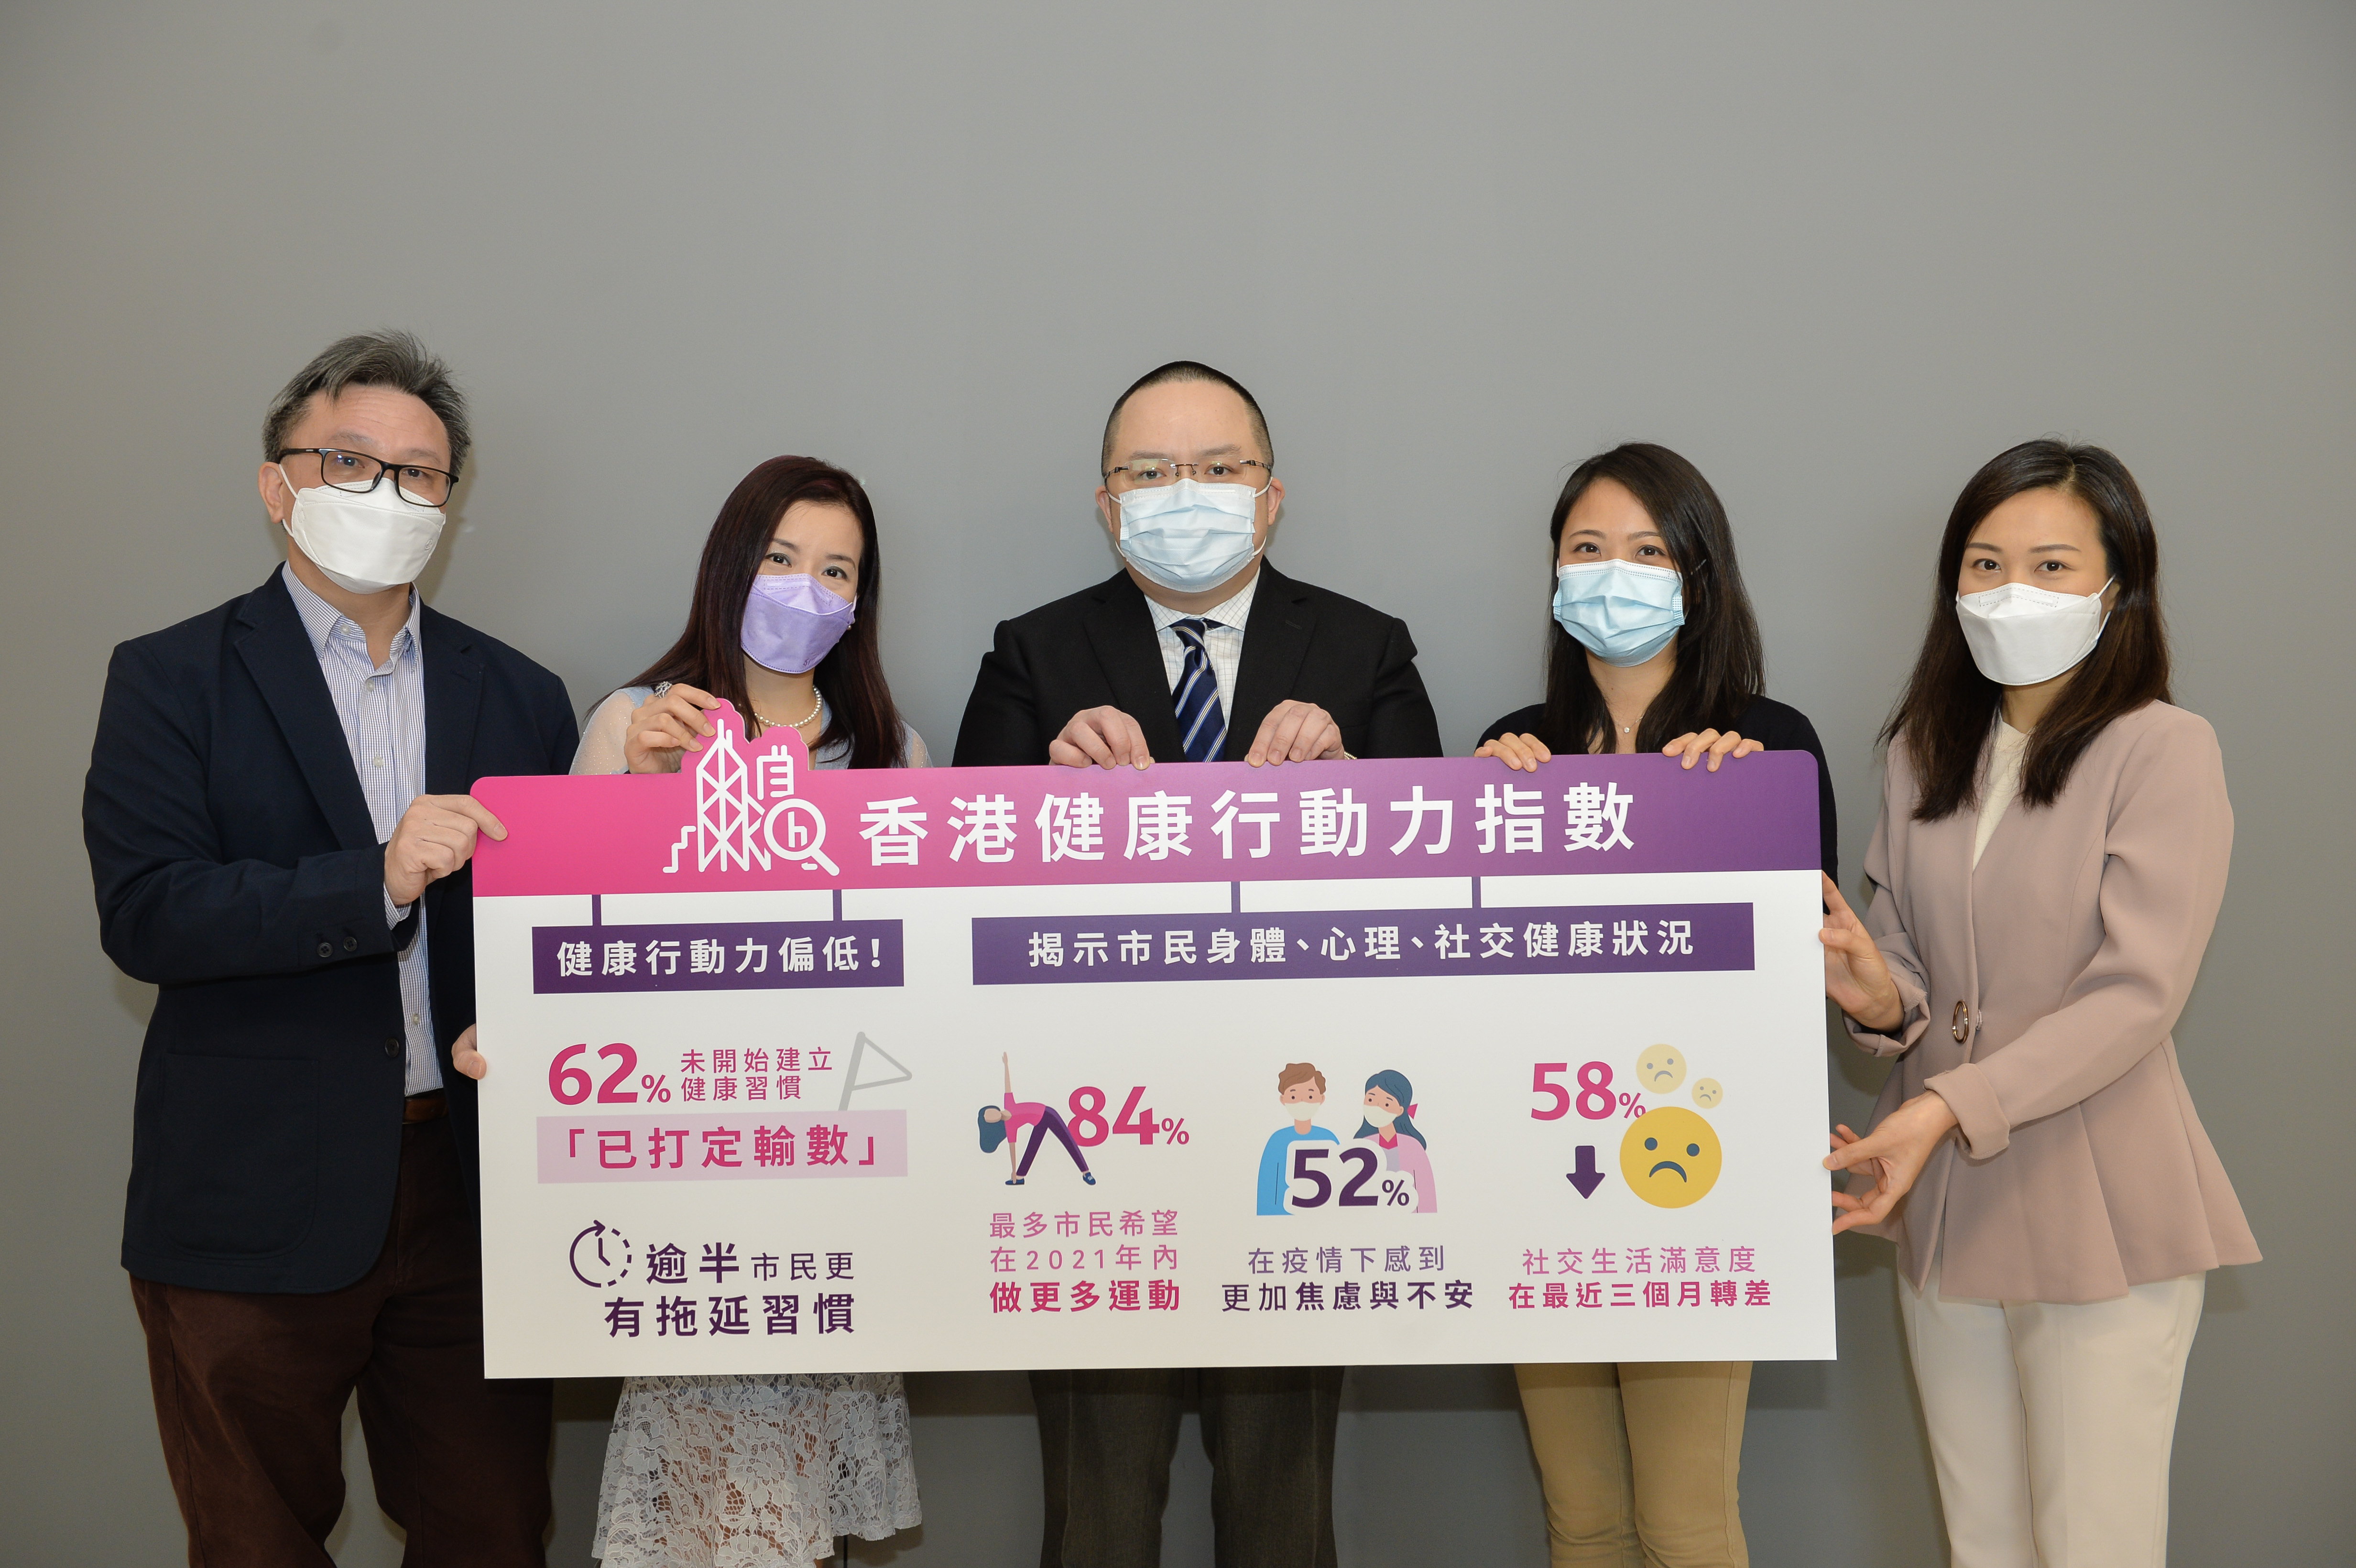 Reckitt Benckiser Launches The First Hong Kong Wellness in Action Index To Guide Citizens Taking Action On Their Wellness